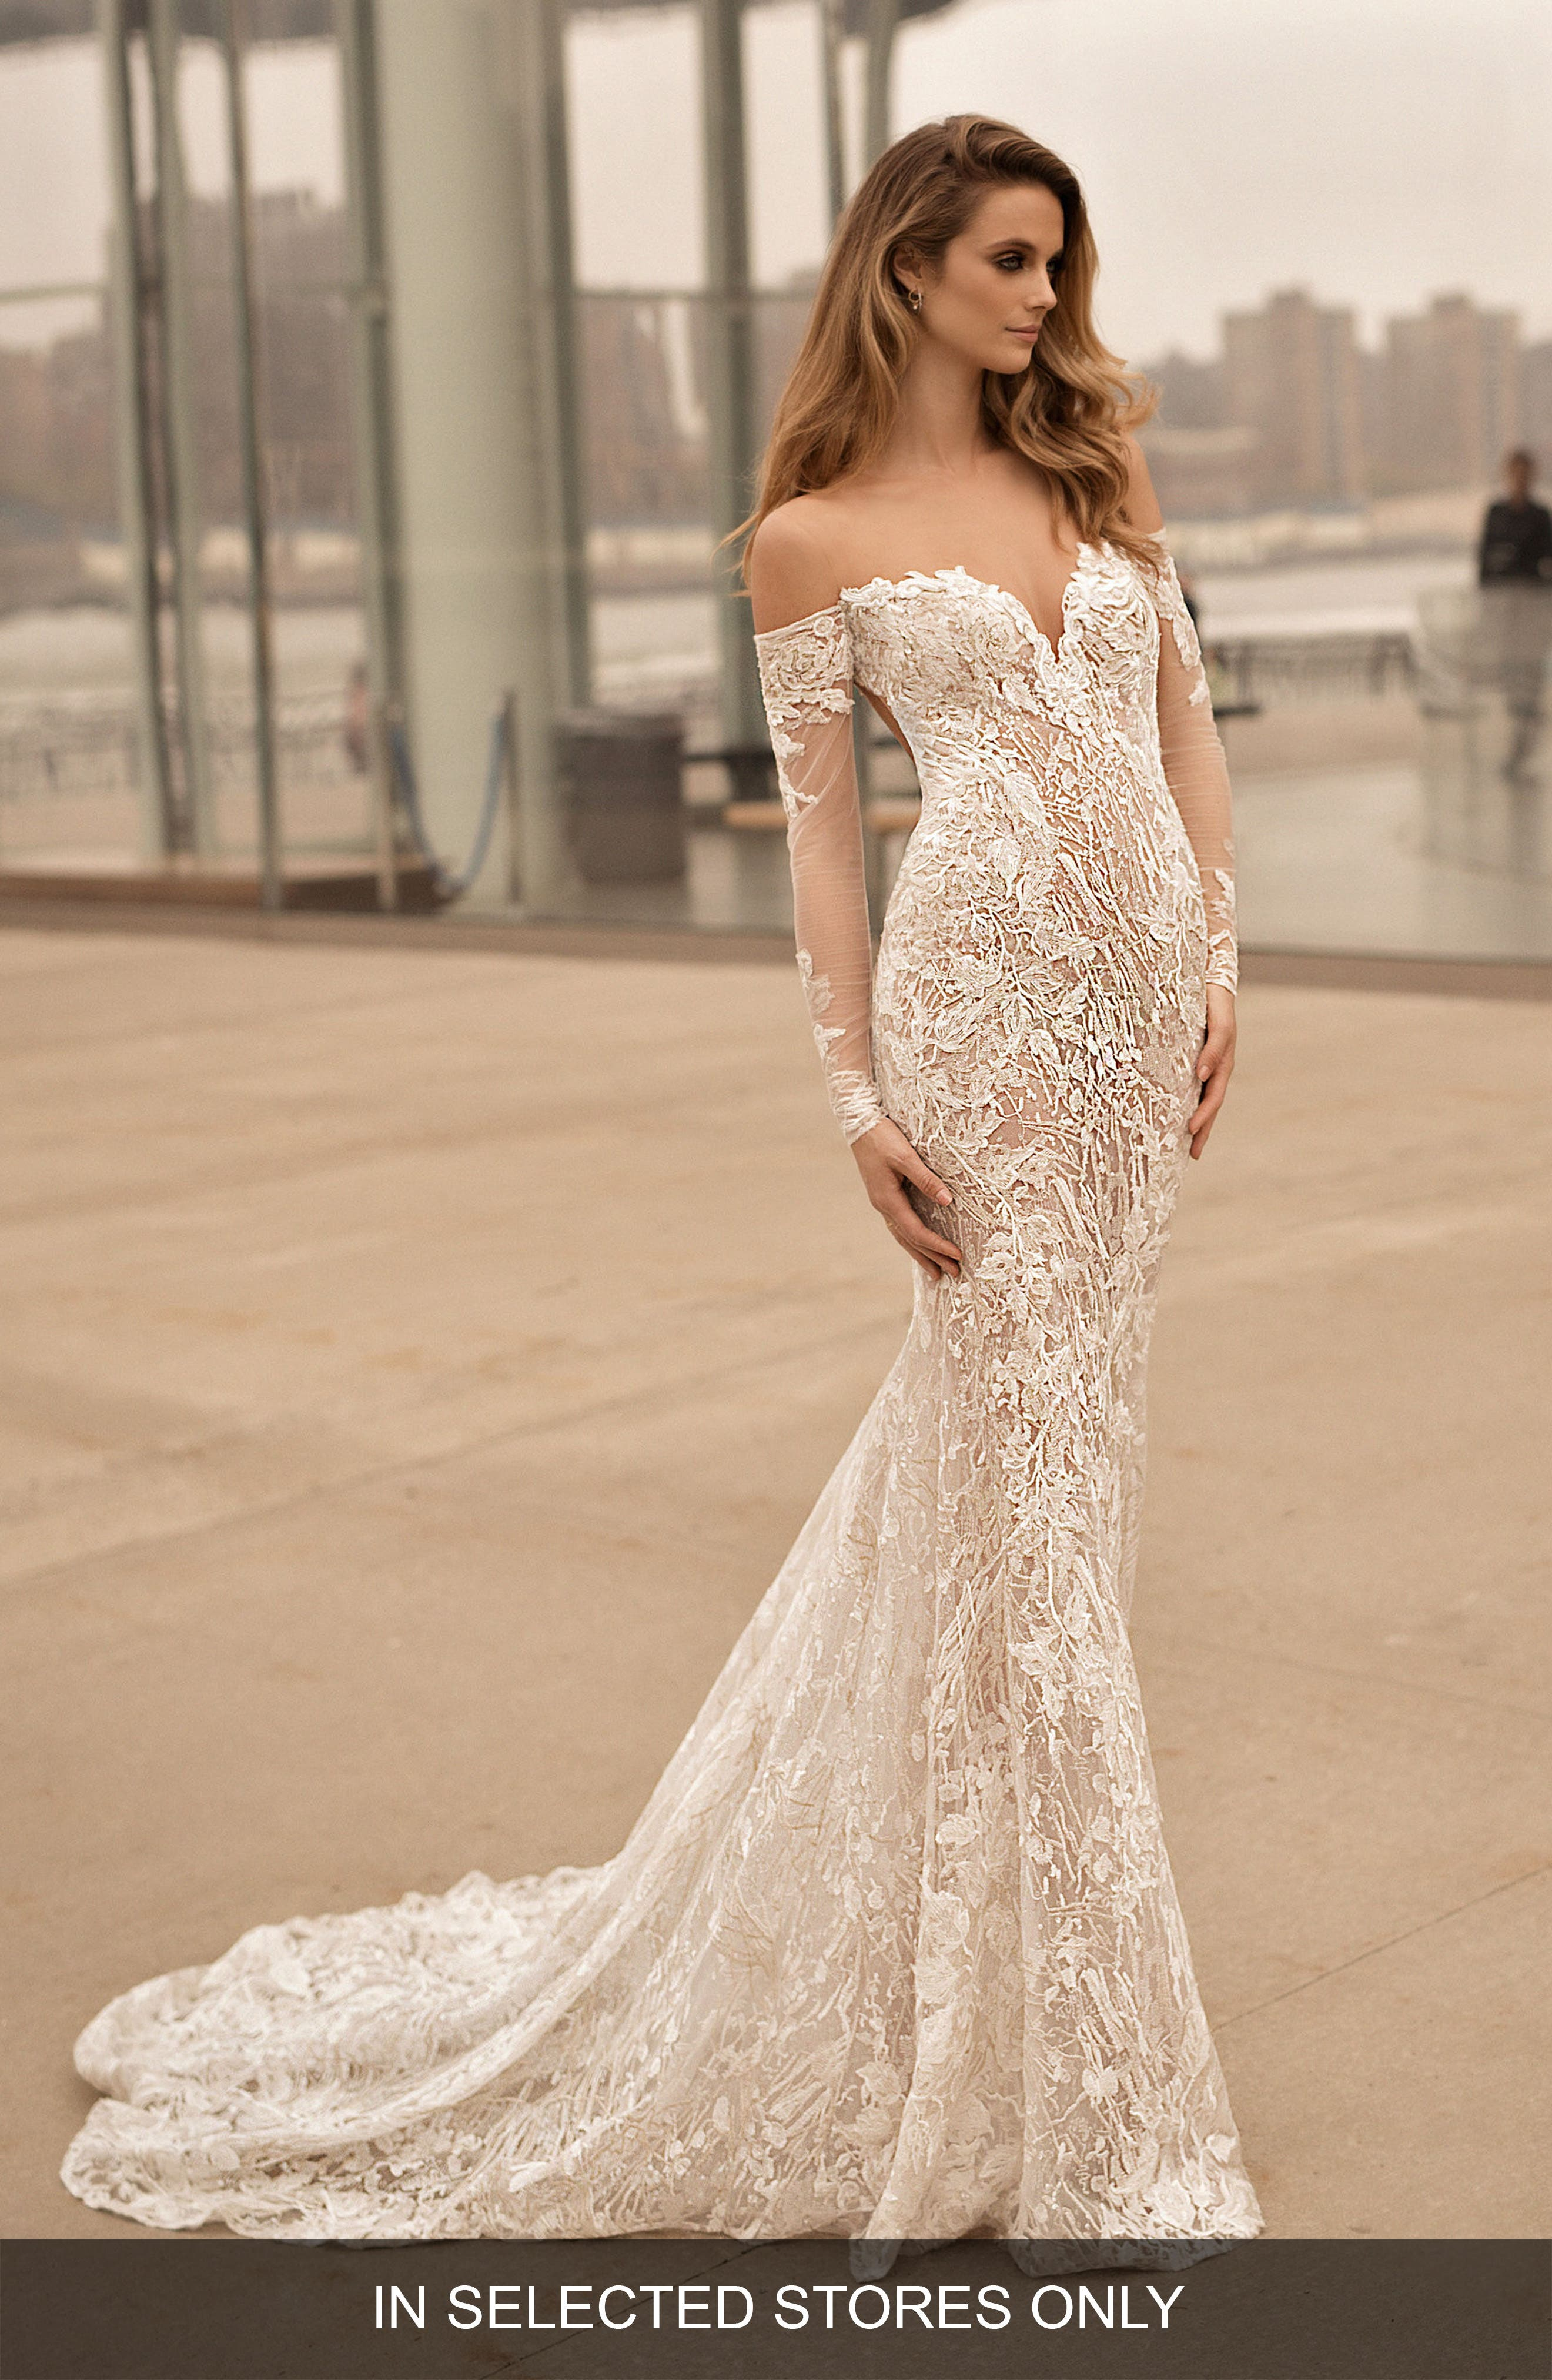 Long Sleeve Illusion Off the Shoulder Mermaid Gown,                             Main thumbnail 1, color,                             IVORY